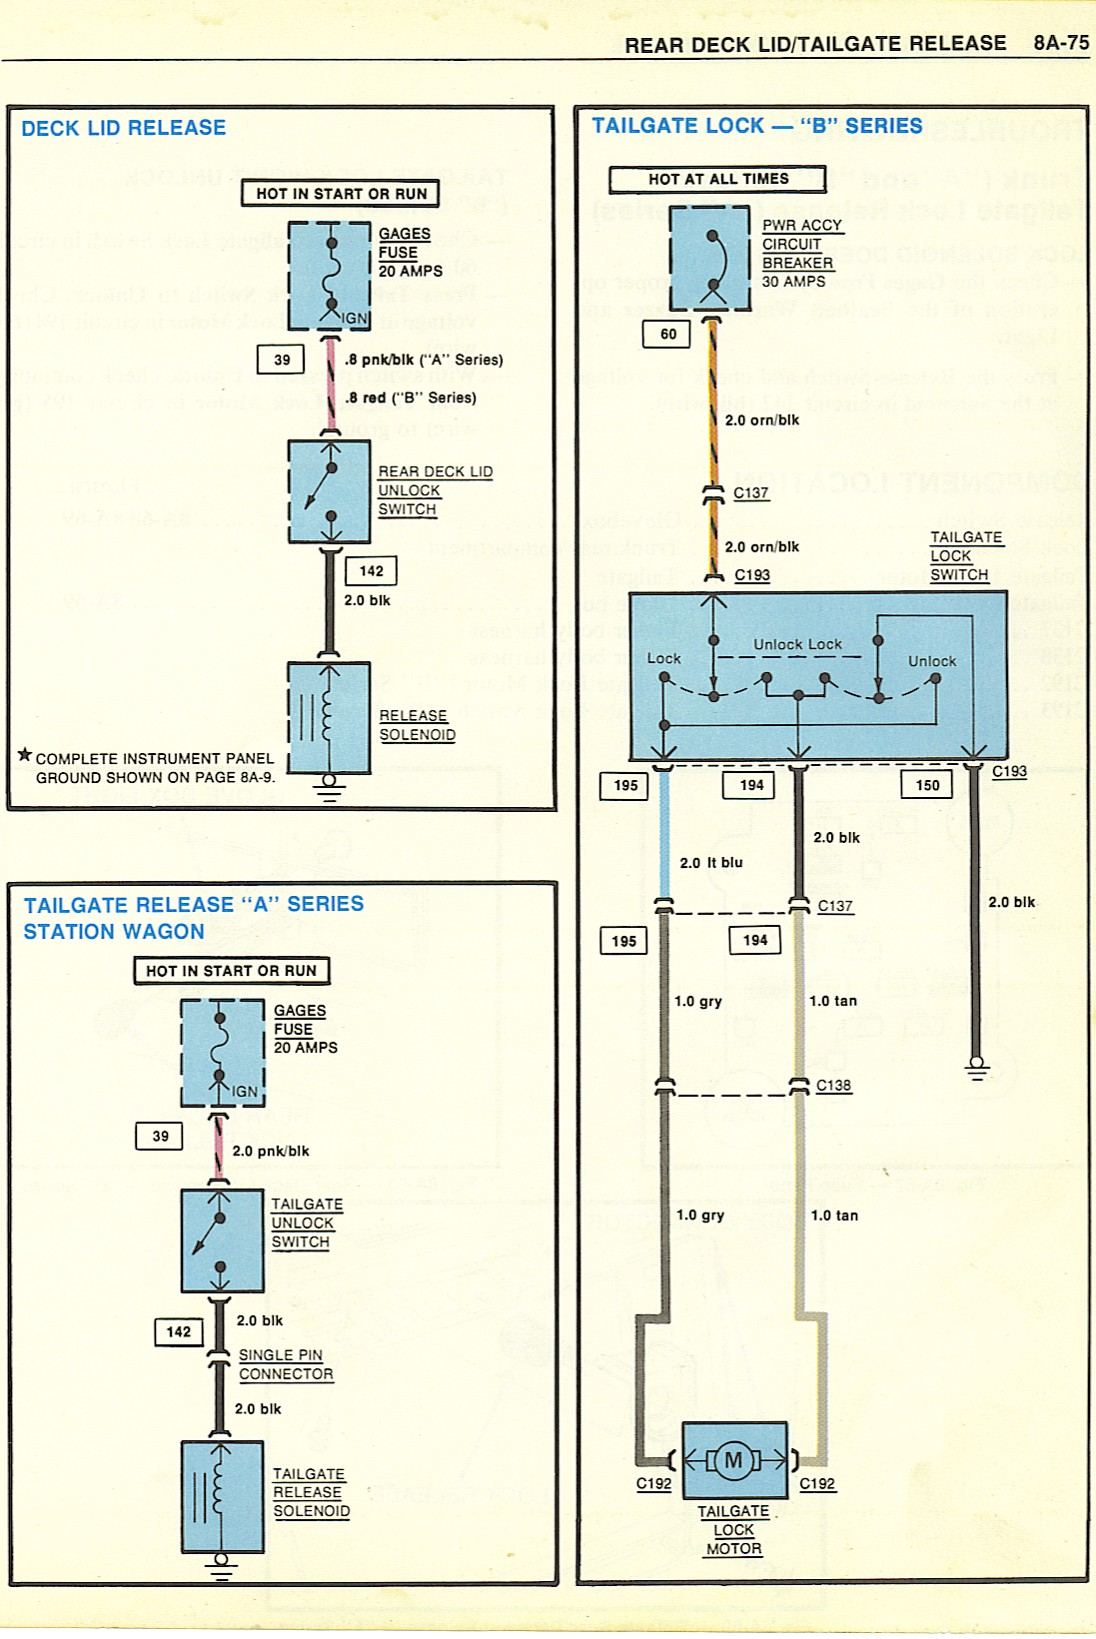 Wiring Diagrams on cat c7 fuel system diagram, ecm motor serial number, ecm pin diagram, ecm motor installation, 1990 chevy lumina engine diagram, generator stator diagram, ecm x 13 motor, ecm motor schematic, biogas generator diagram, rectifier diagram, ecm schematic diagram, cat 6 pin diagram, 855 cummins fuel pump diagram, cummins isb fuel system diagram, ecm motor controller circuits, ecm wiring harness, aiim ecm diagram, 2003 cadillac deville fuse box diagram, enterprise system diagram, ecm motor parts,